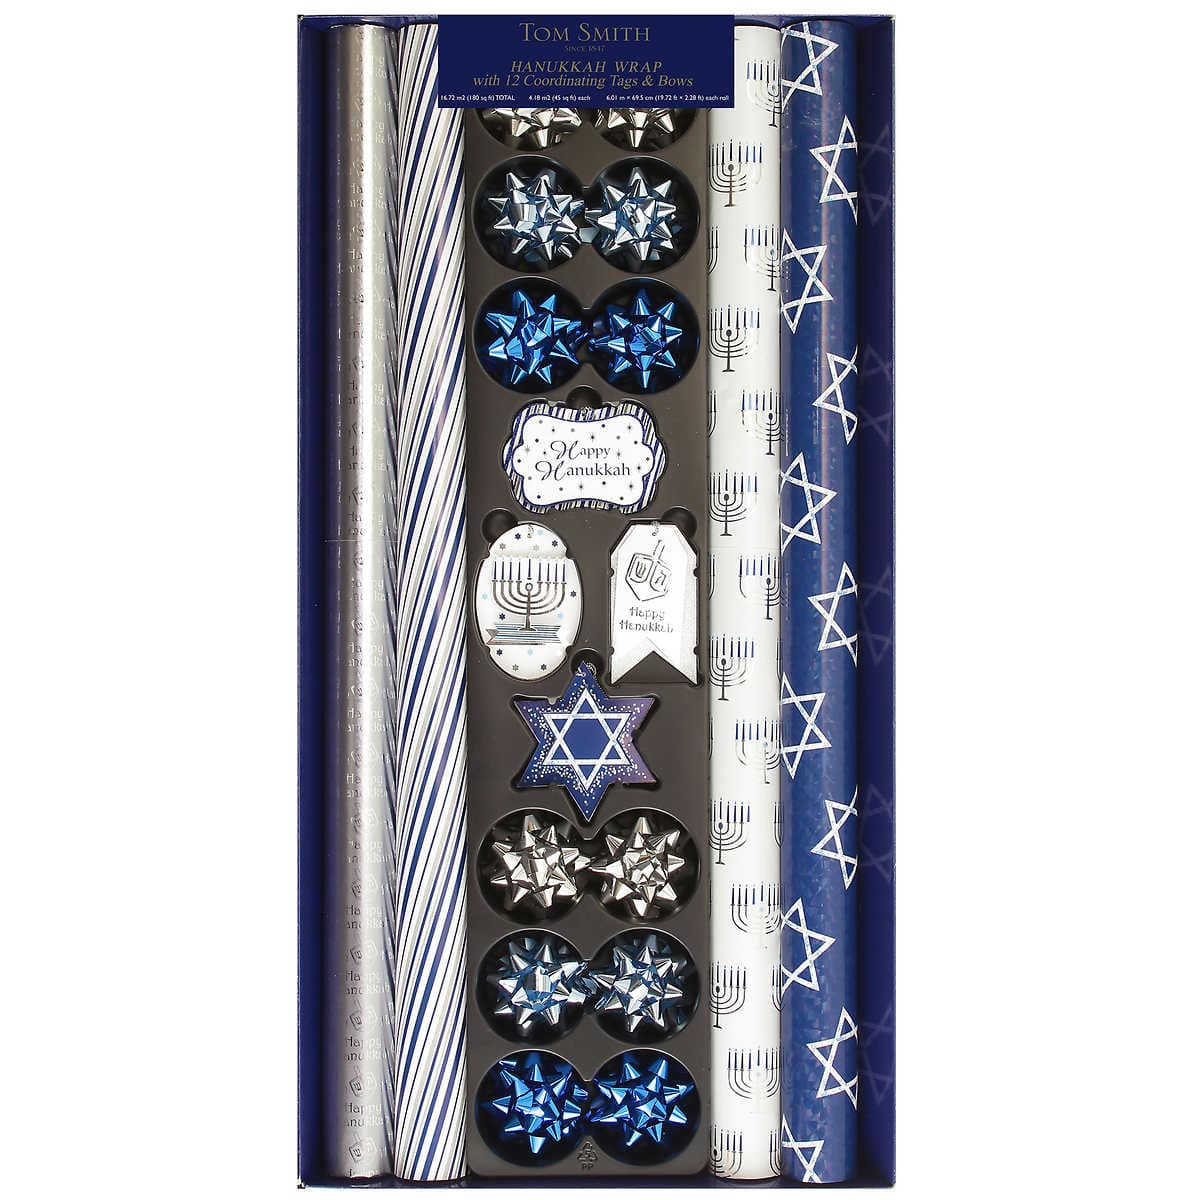 Hanukkah Wrapping Paper Ensemble Pack, 4 Rolls, 12 Foil Bows, 12 Embellished Tags $4.97